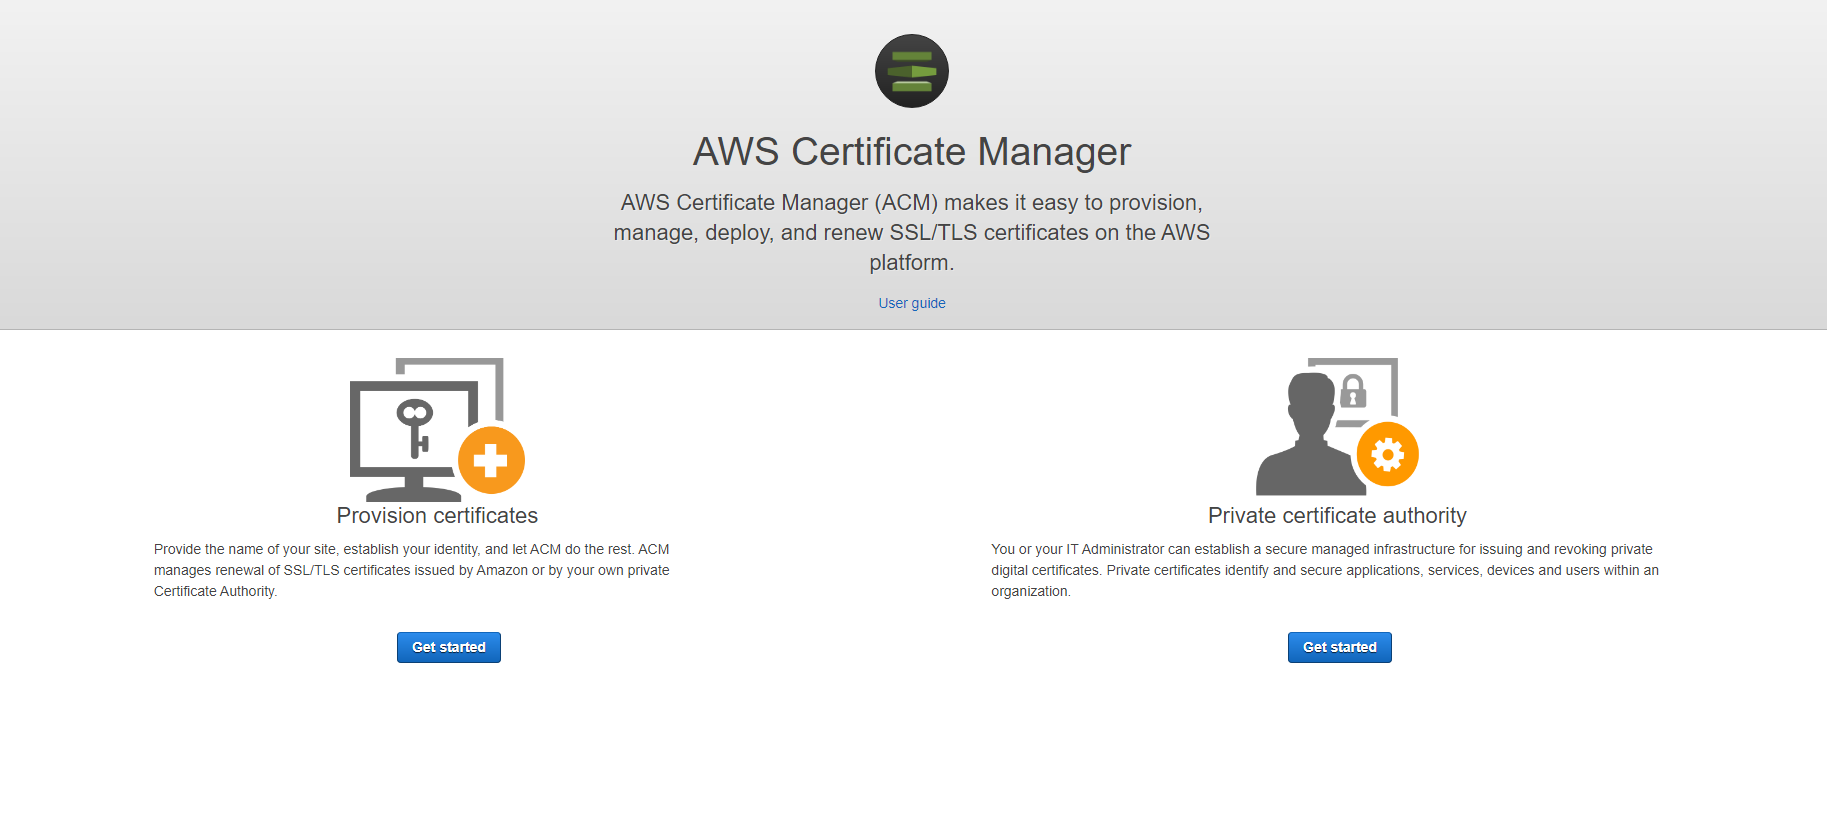 AWS Provision certificate